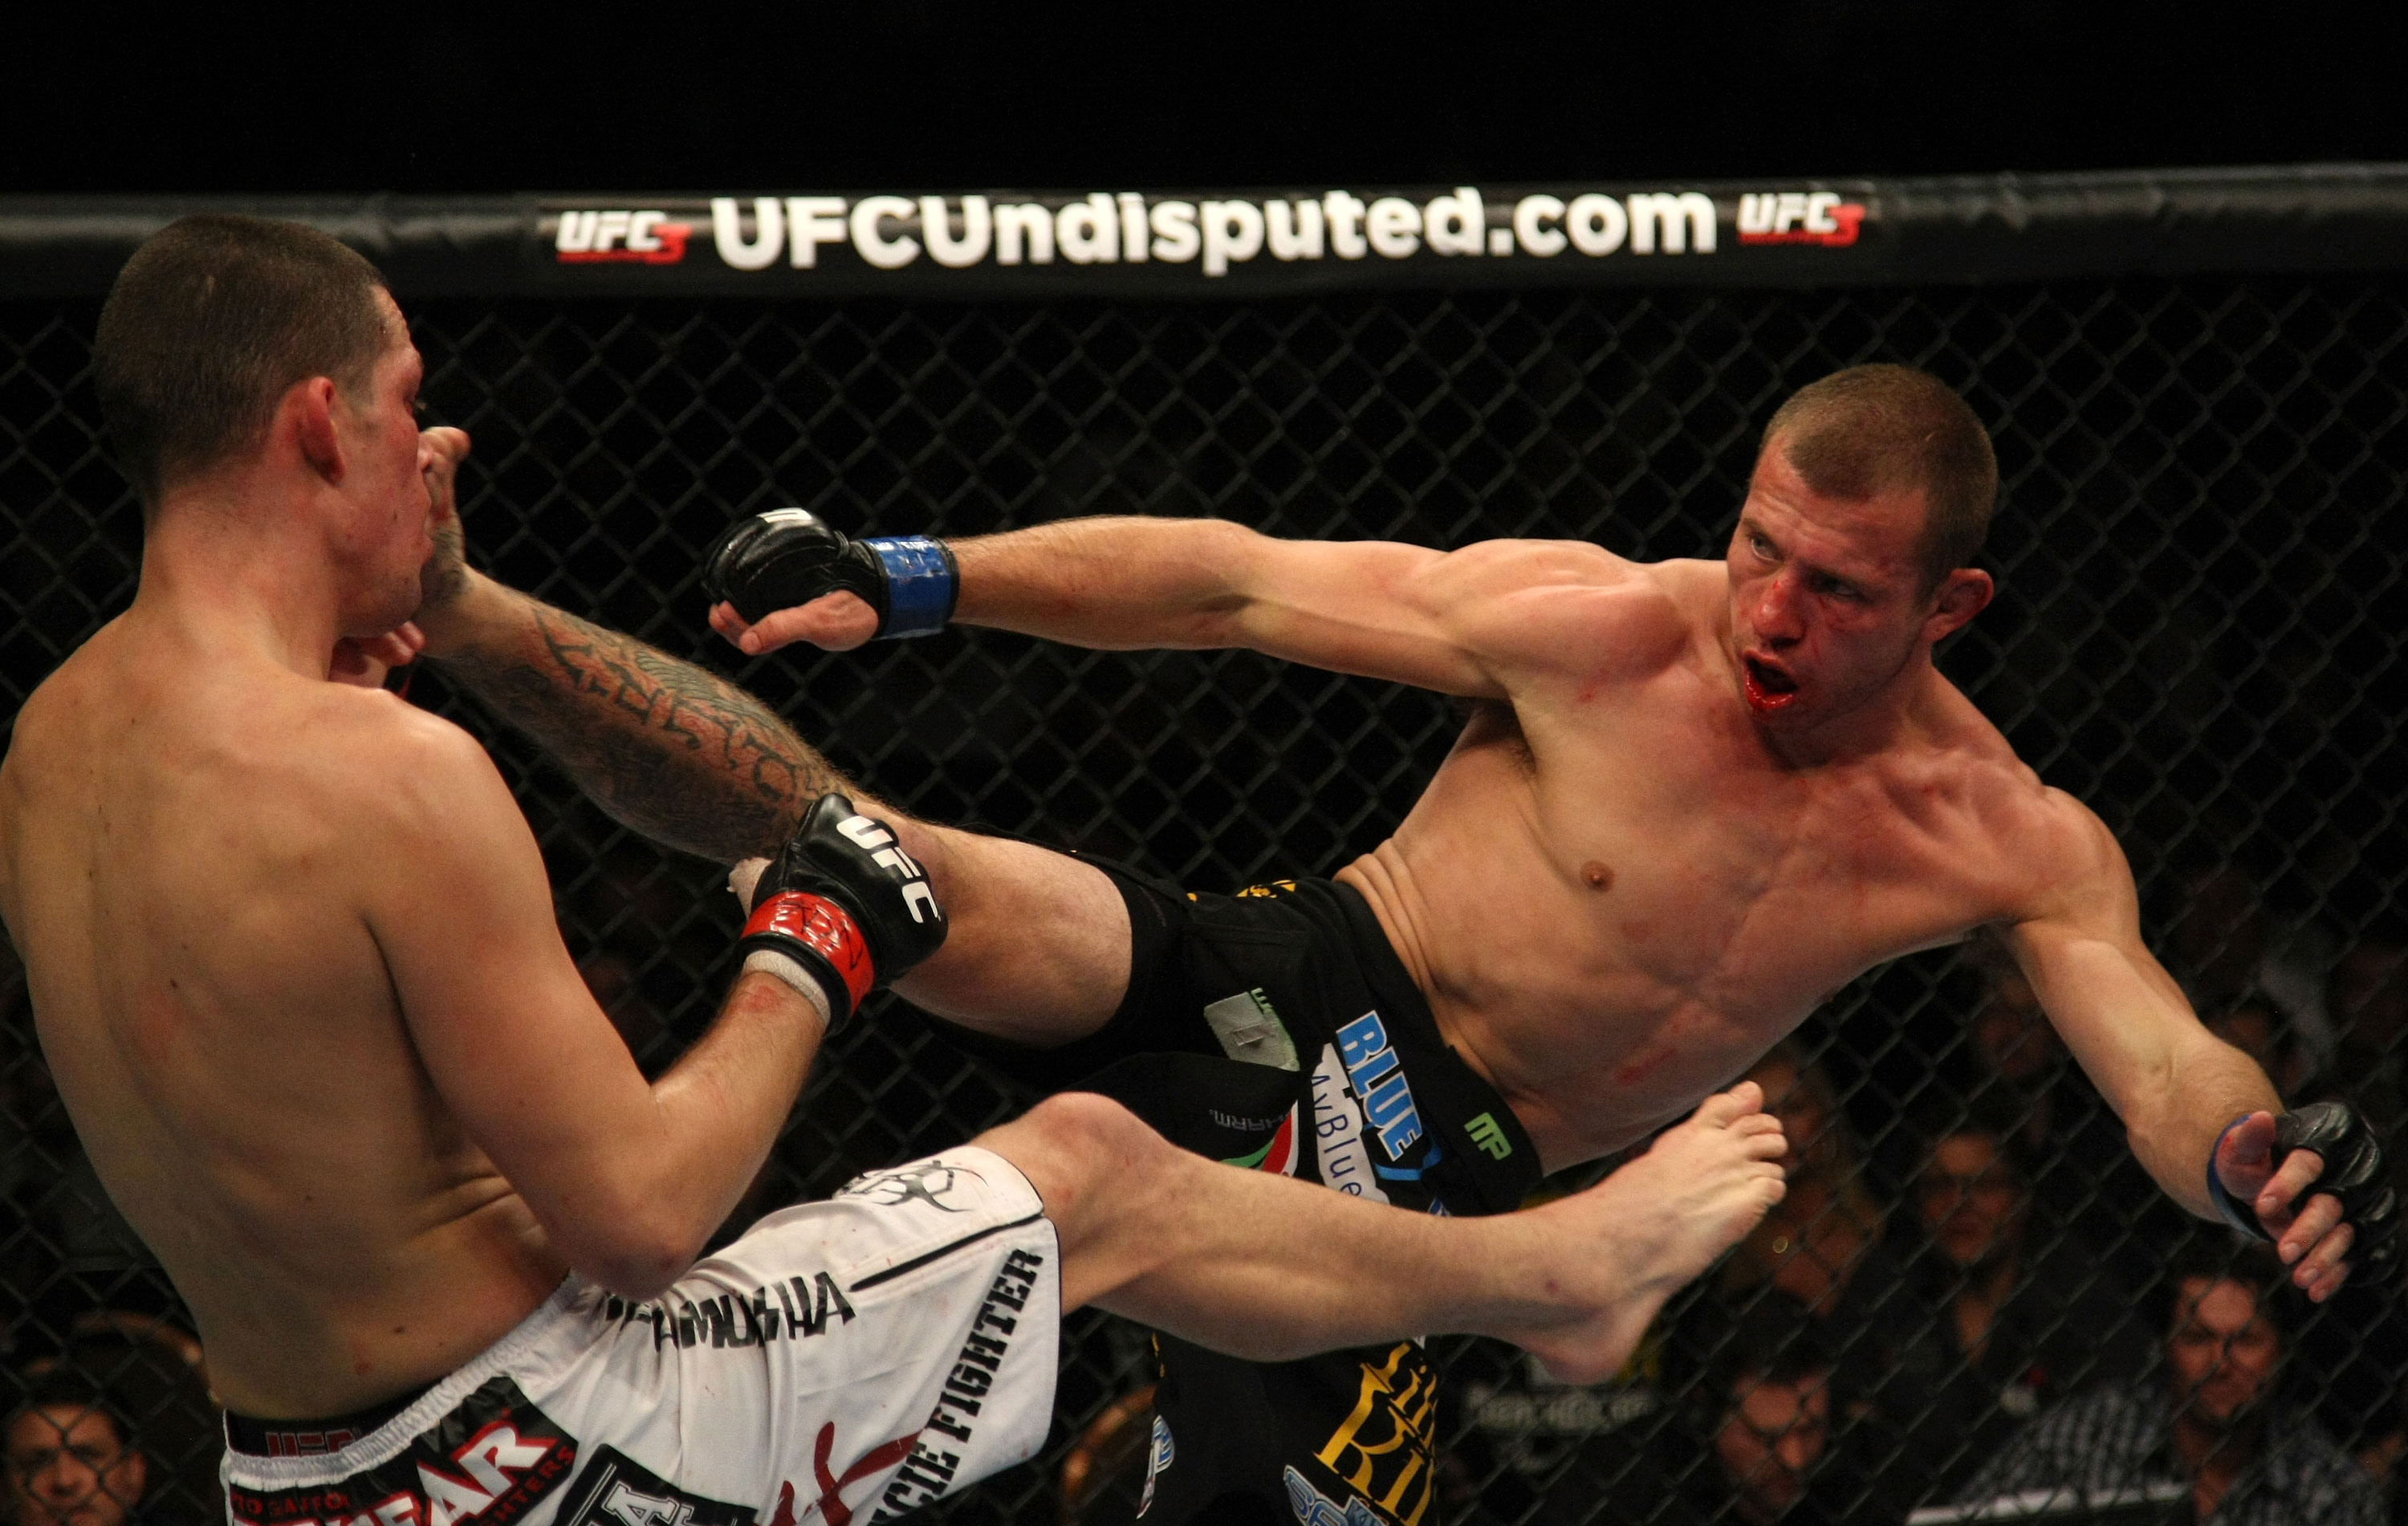 LAS VEGAS, NV - DECEMBER 30:  Donald Cerrone (right) kicks Nate Diaz during the UFC 141 event at the MGM Grand Garden Arena on December 30, 2011 in Las Vegas, Nevada.  (Photo by Donald Miralle/Zuffa LLC/Zuffa LLC via Getty Images) *** Local Caption *** Donald Cerrone; Nate Diaz